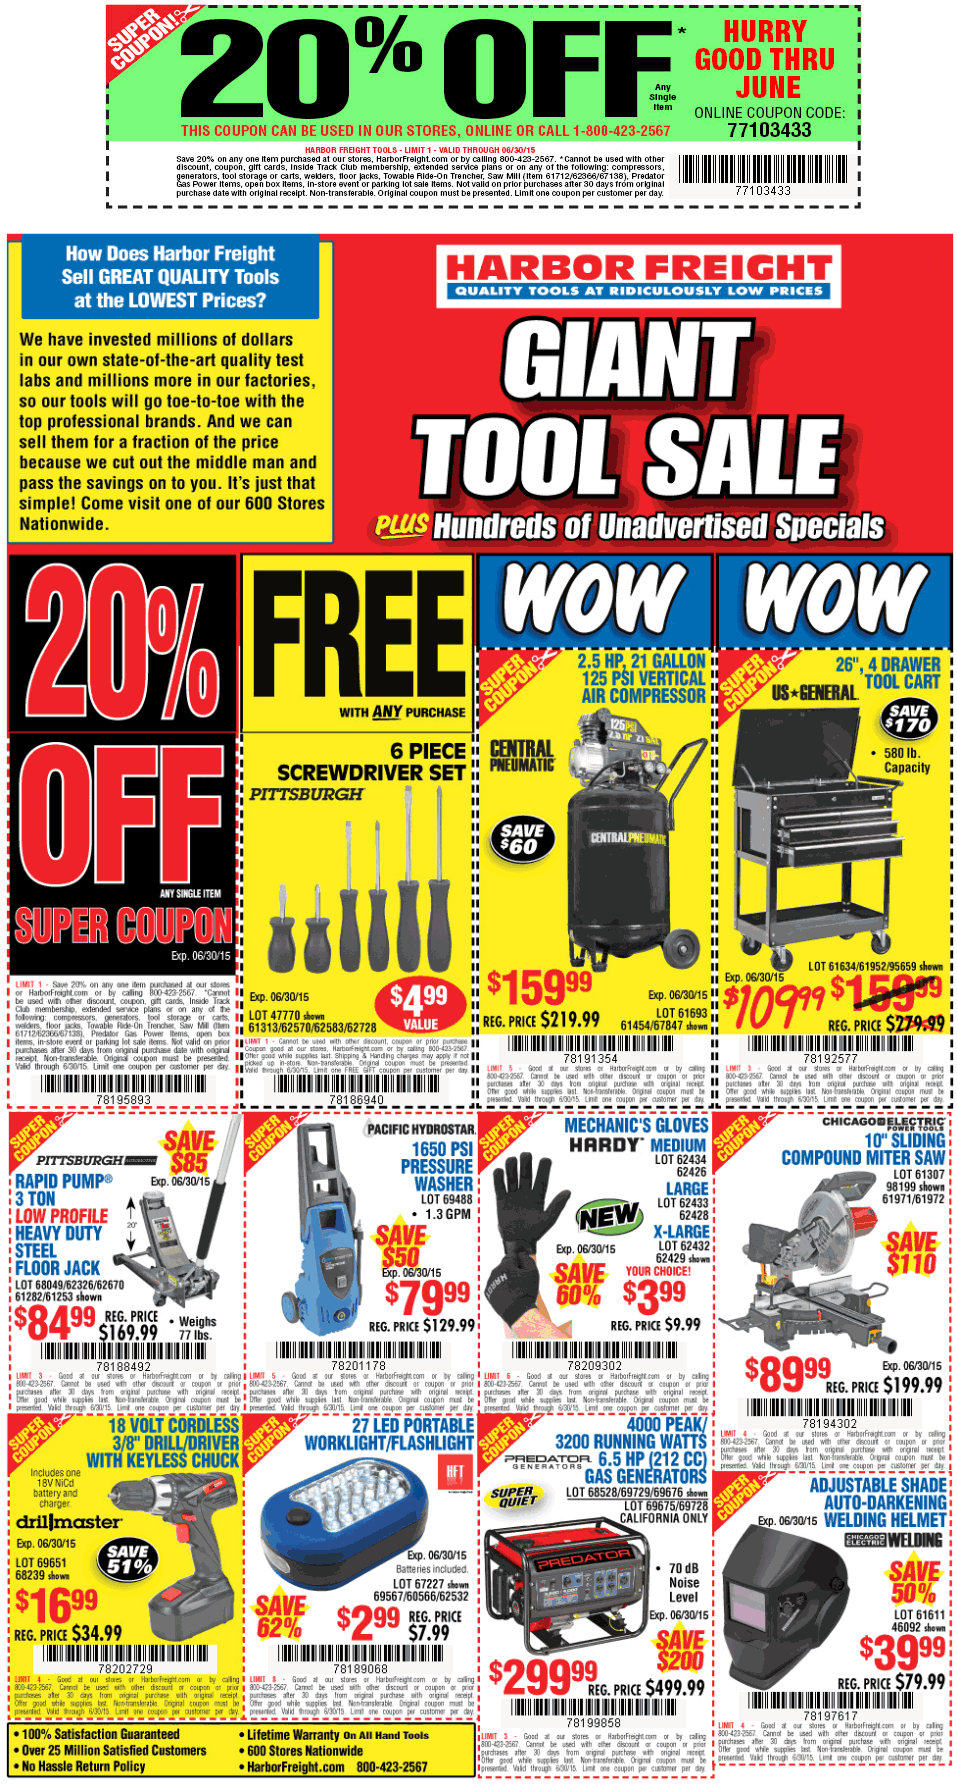 Harbor Freight Coupon November 2017 20% off a single item at Harbor Freight Tools, or online via promo code 77103433